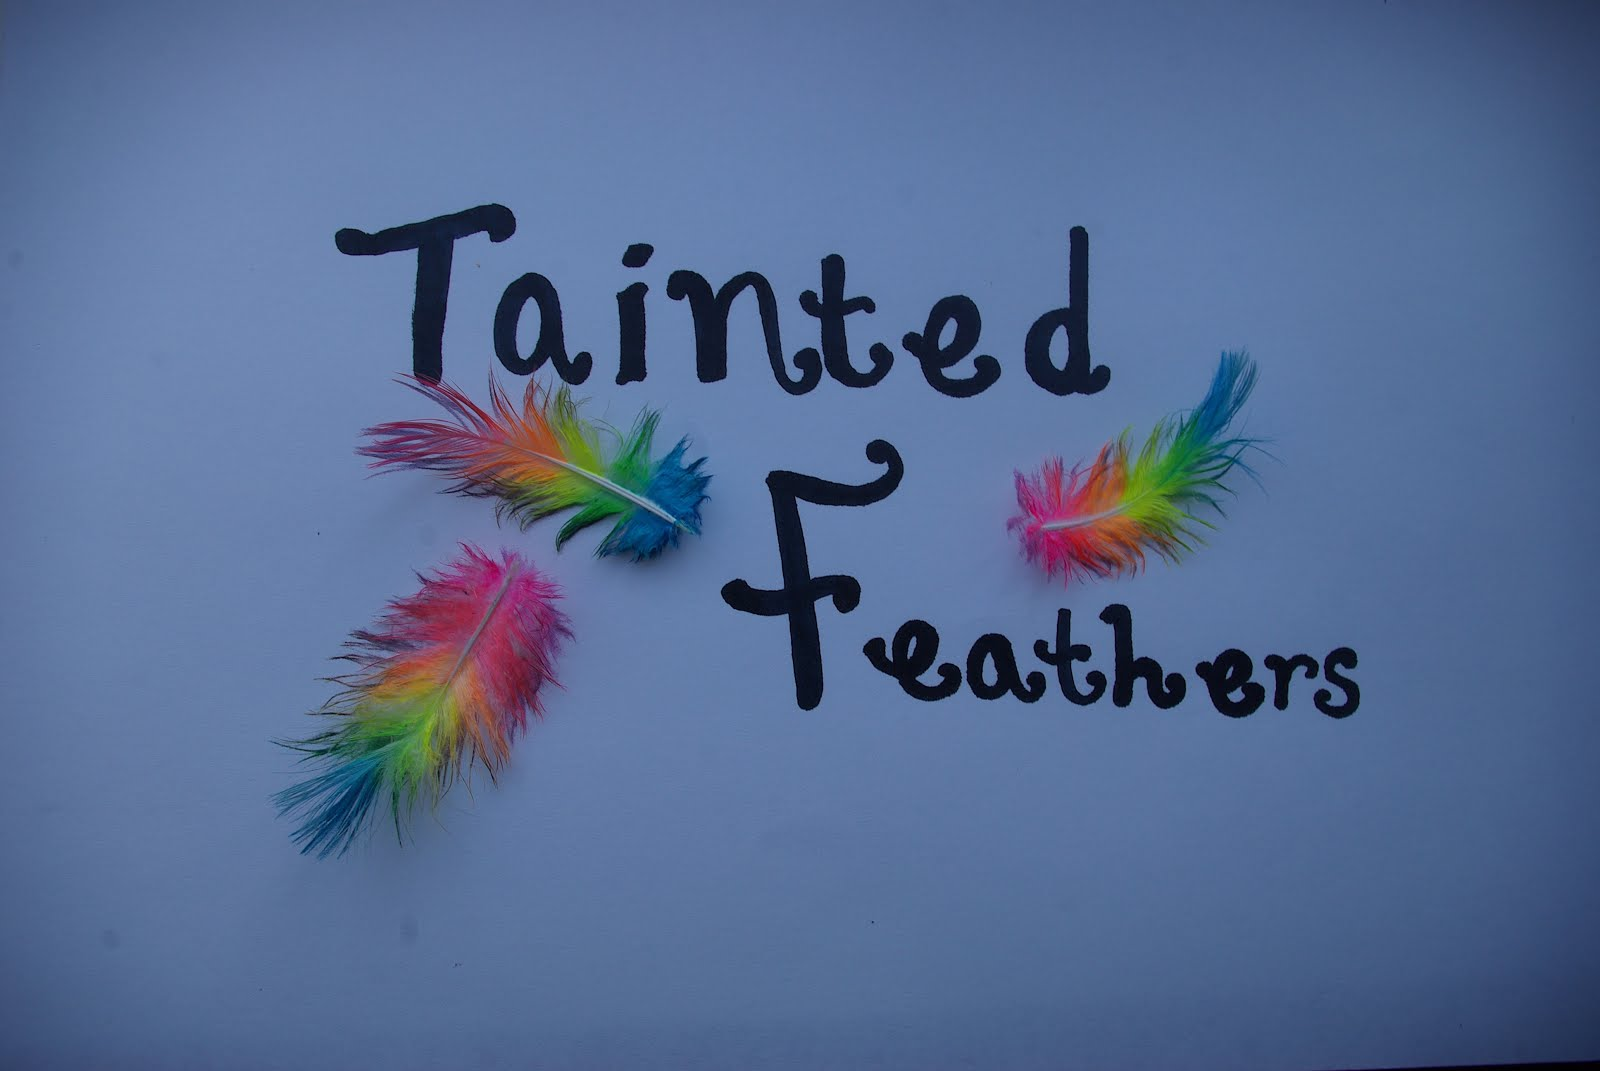 Tainted Feathers